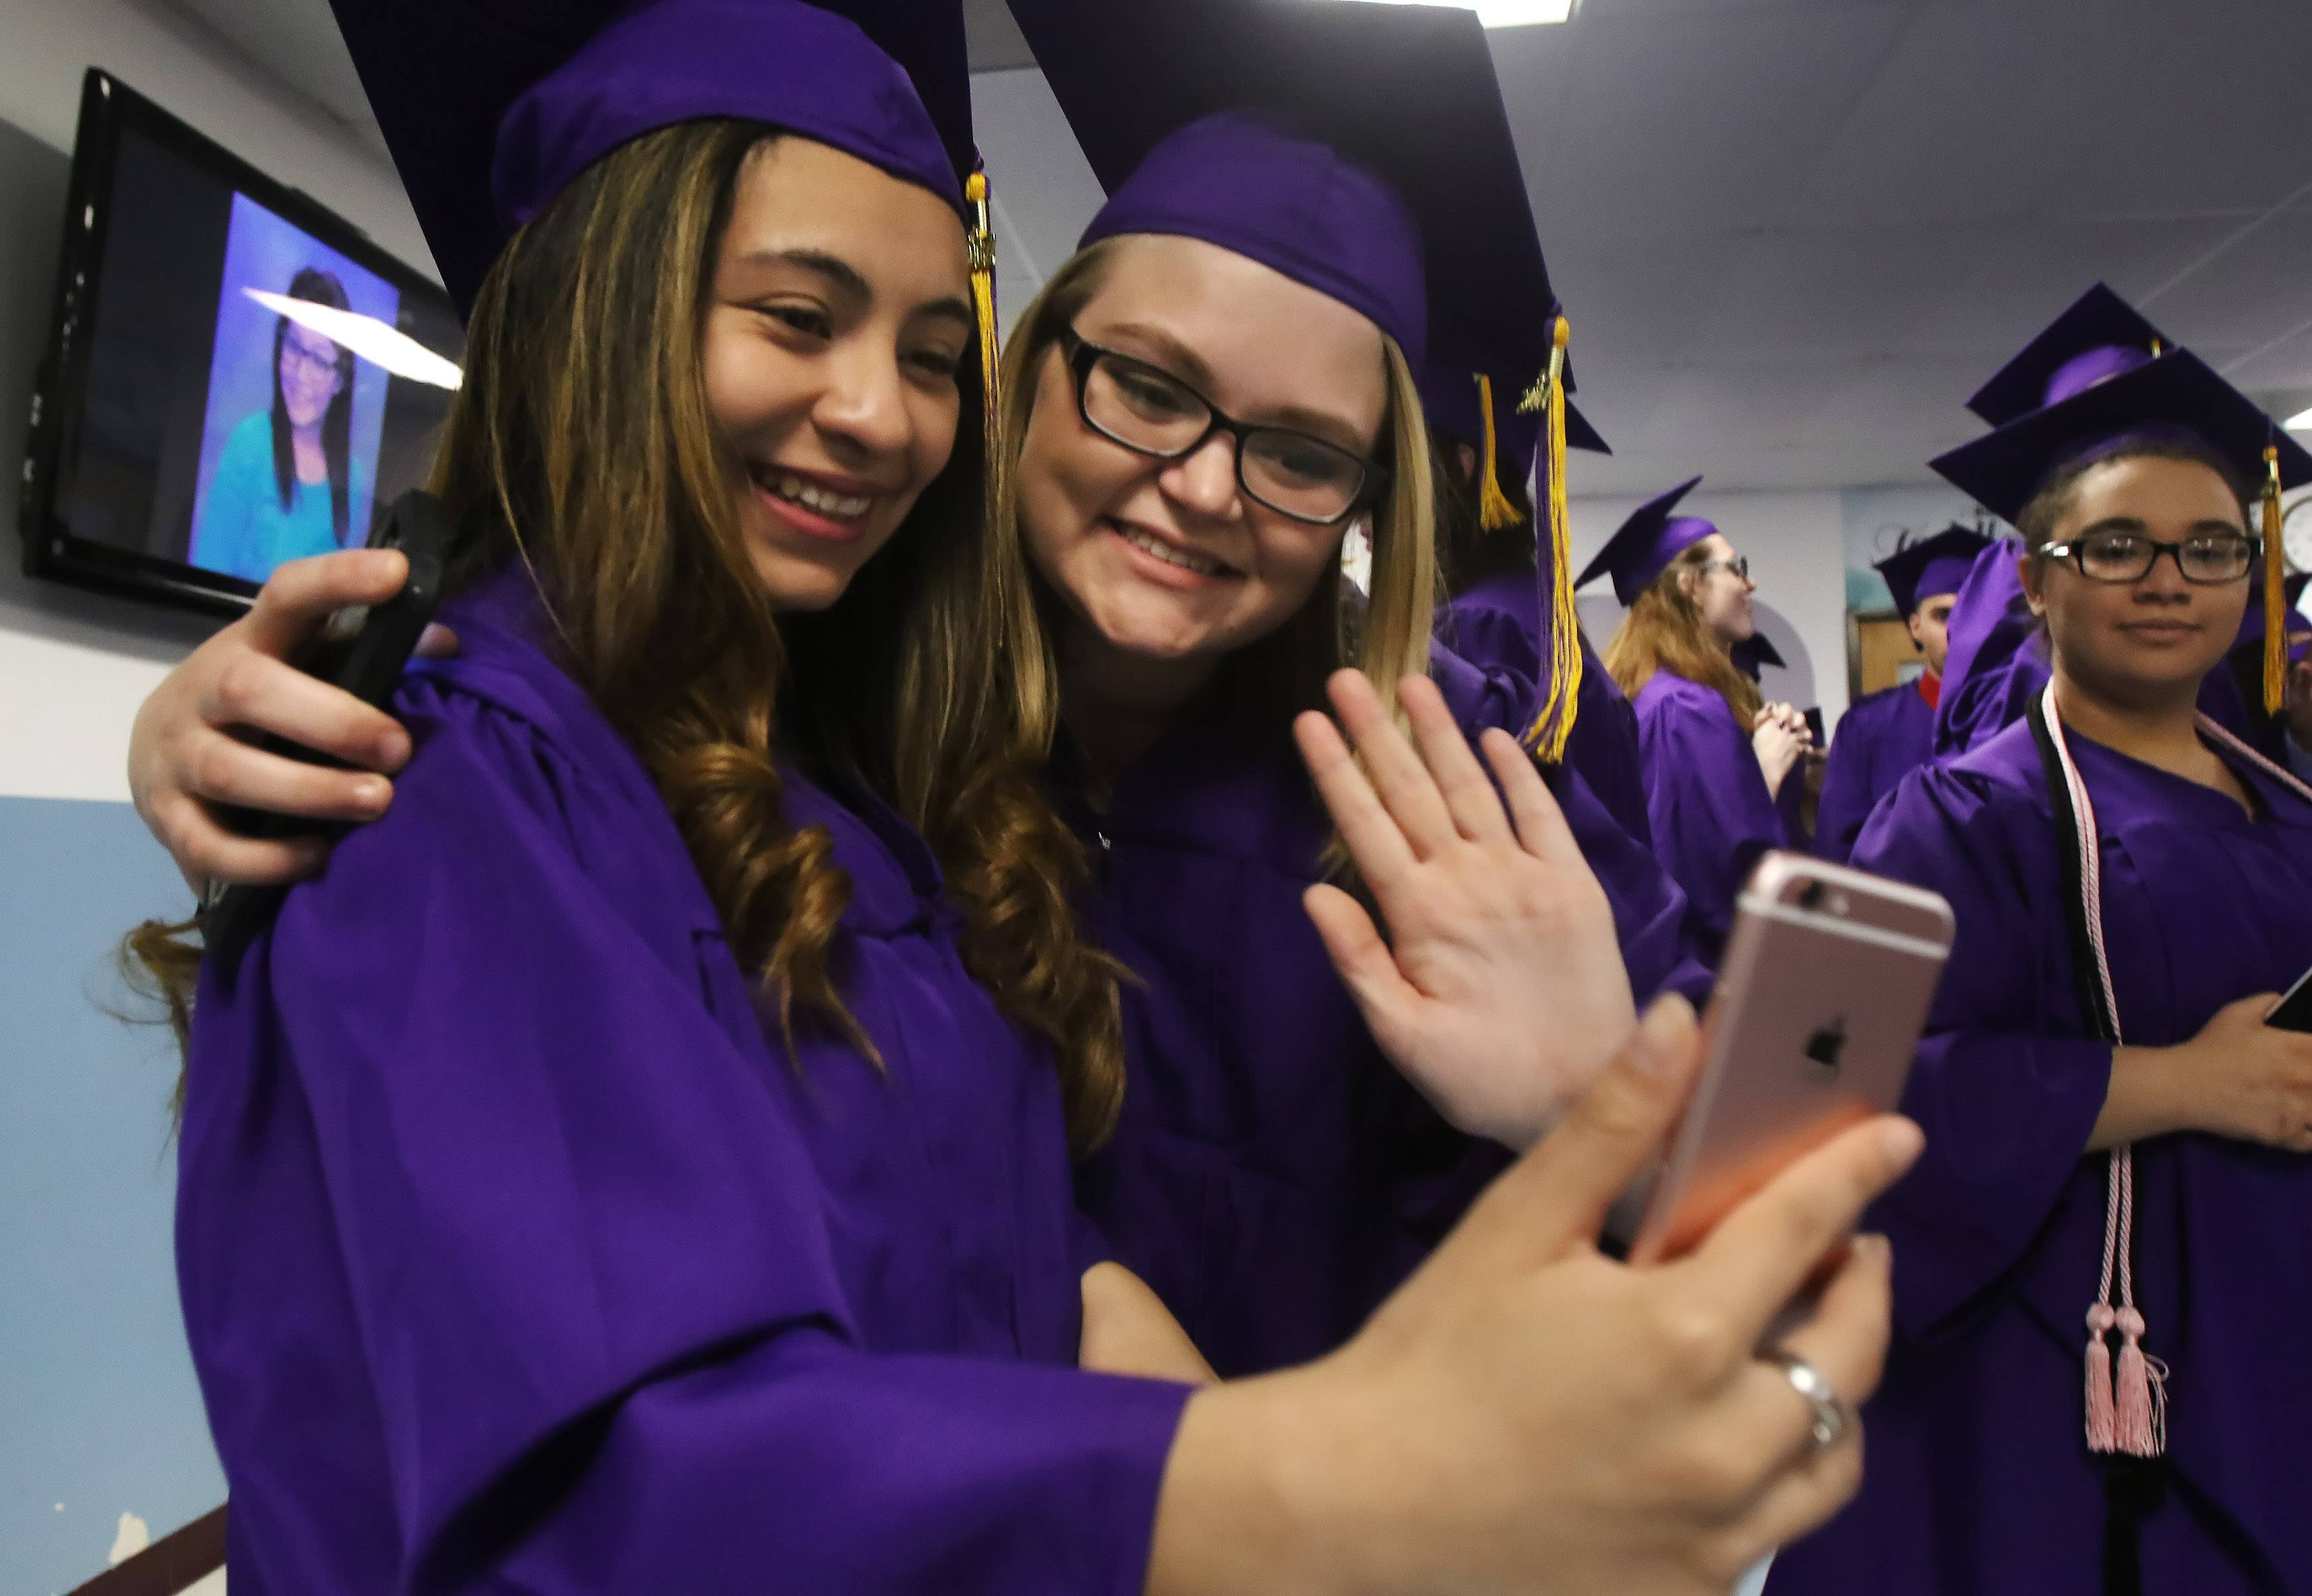 Ariela Solano, left, and Josephine Karg wave to friends during FaceTime on their phone before the Wauconda High School graduation Sunday at Quentin Road Bible Church in Lake Zurich. There were 317 seniors who received their diploma at the commencement exercises.